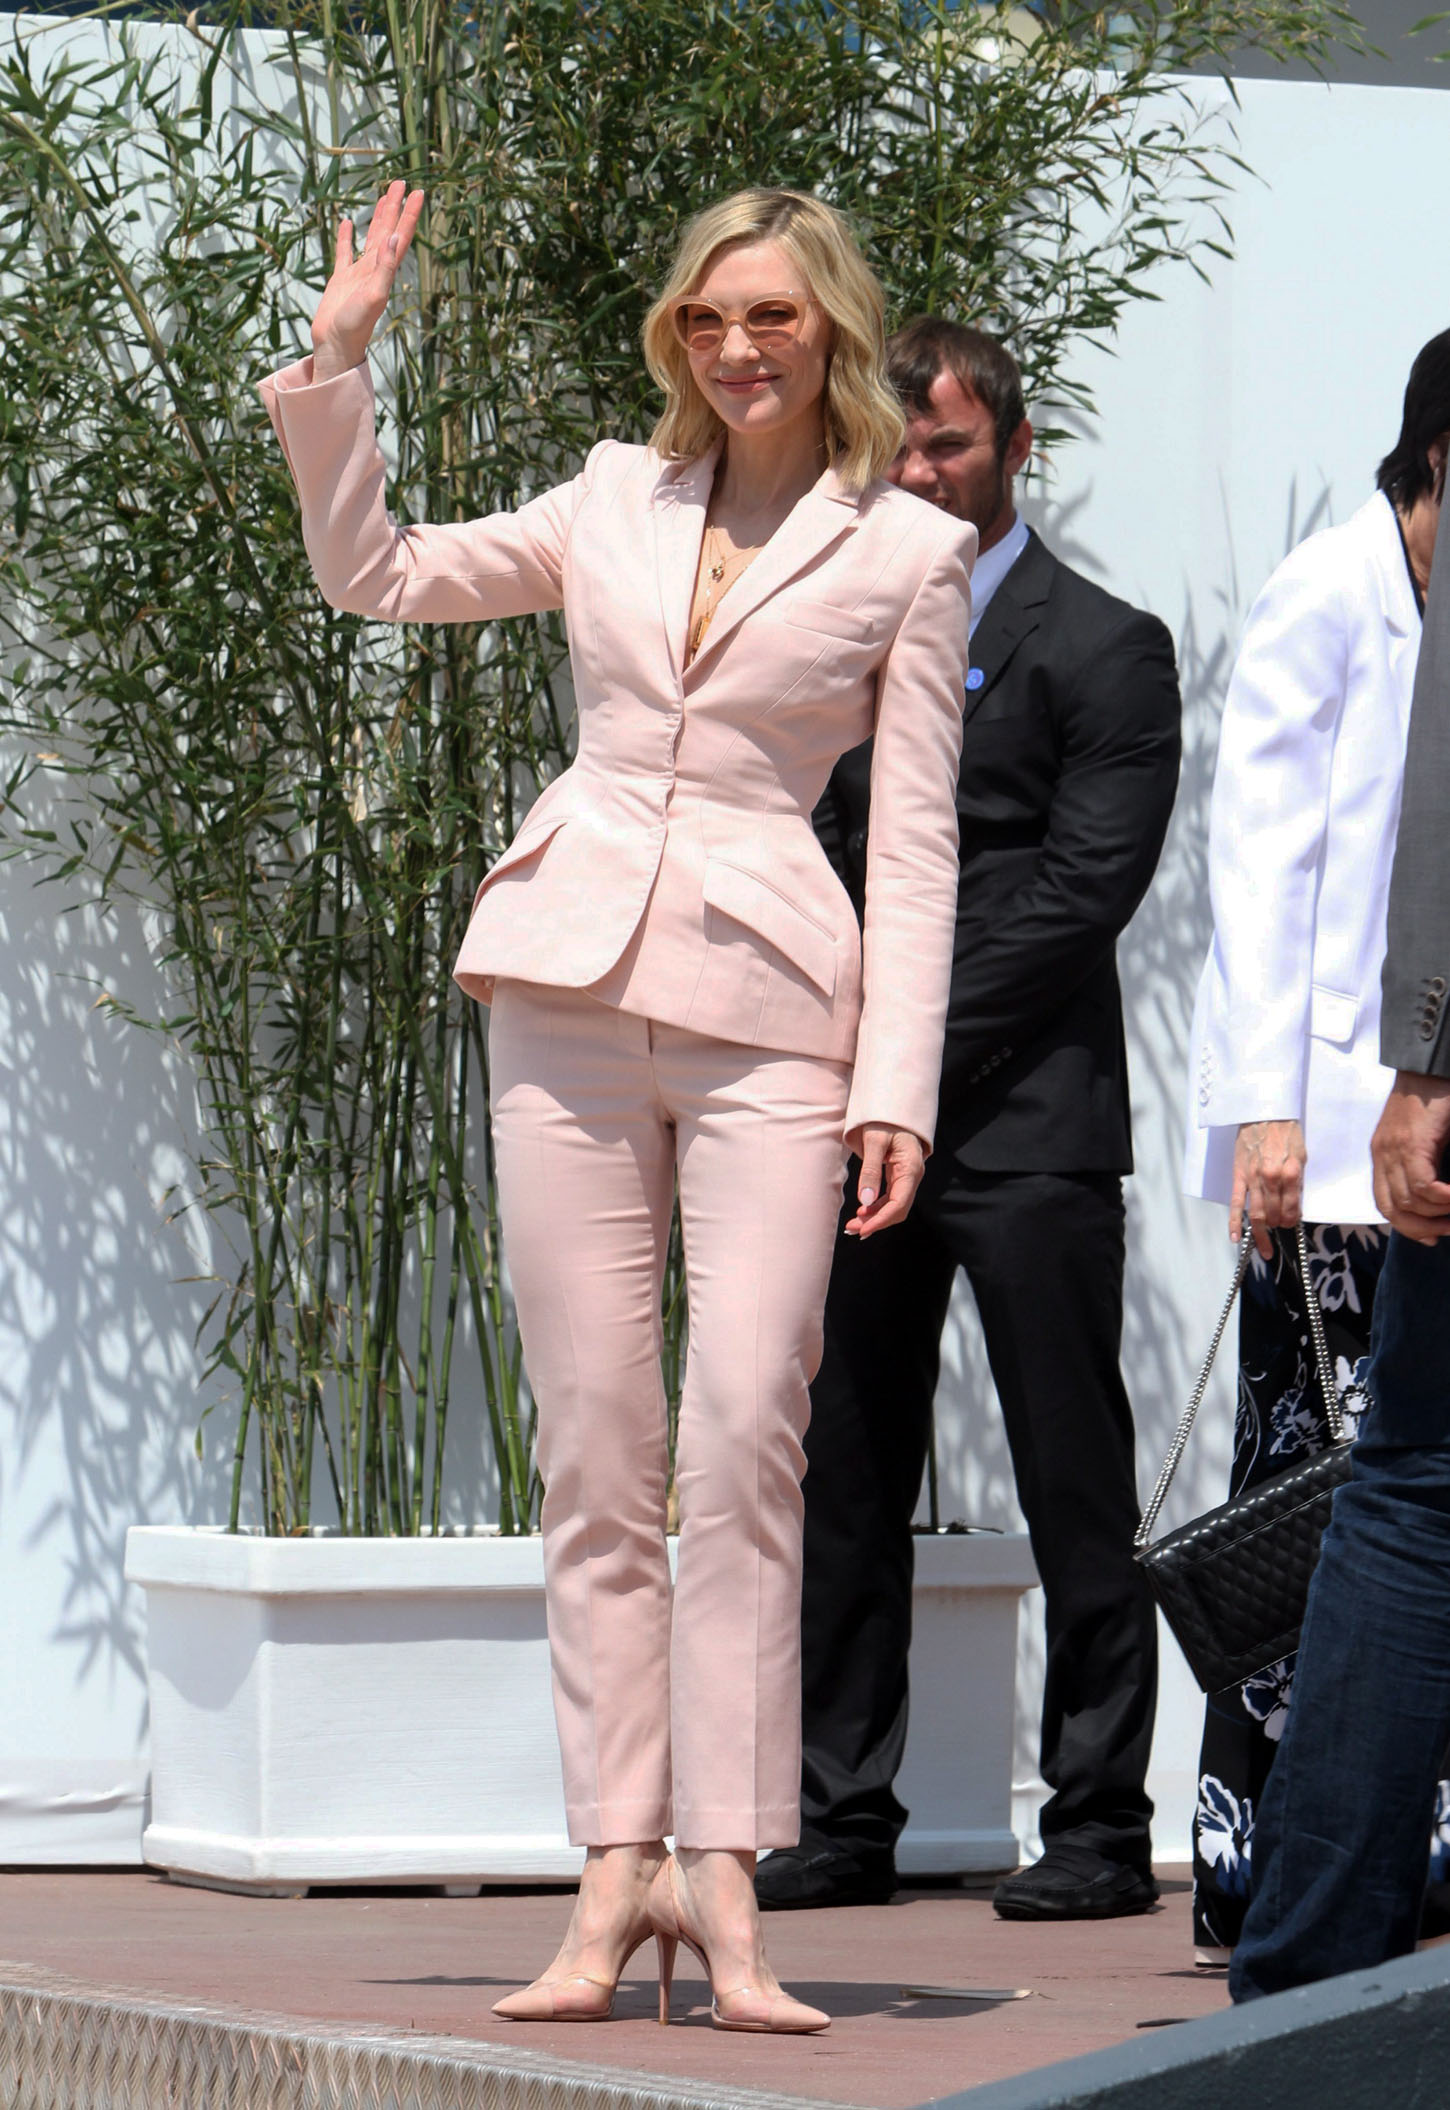 Cate Blanchett, Kirsten Stewart and Ava Duvernay sighted before the Photocall of the Jury from the 71th Filmfestiva De Cannes. <P> Pictured: Cate Blanchett <B>Ref: SPL1693145  080518  </B><BR/> Picture by: Splash News<BR/> </P><P> <B>Splash News and Pictures</B><BR/> Los Angeles:310-821-2666<BR/> New York:212-619-2666<BR/> London:870-934-2666<BR/> <span id=